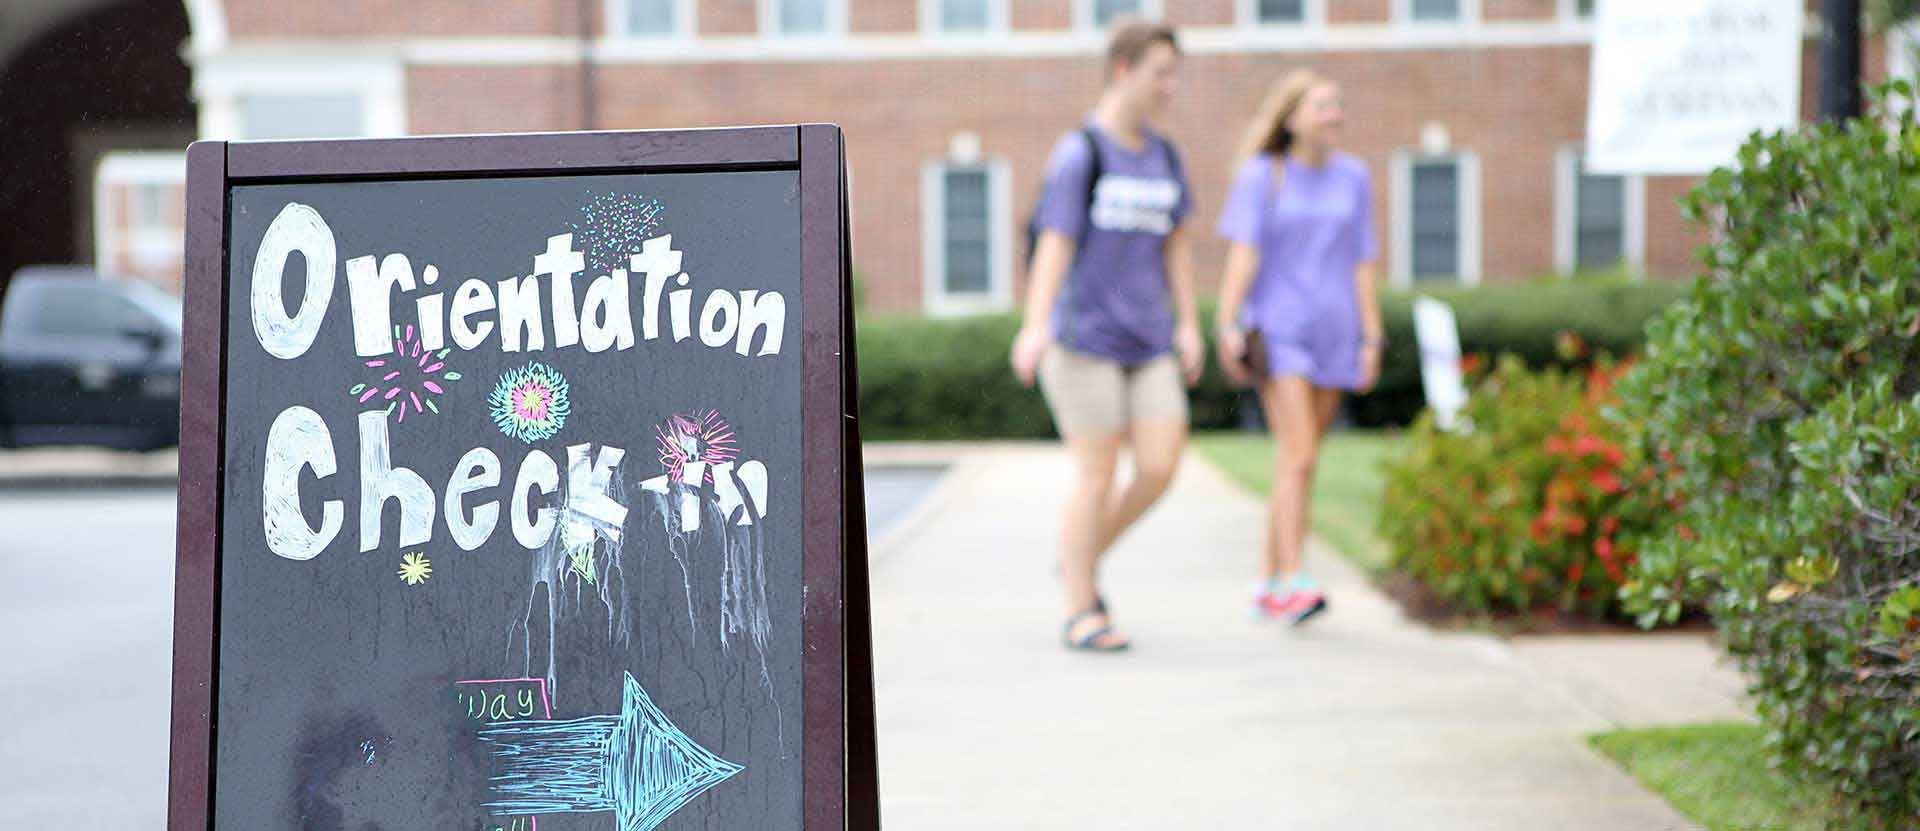 Students walk in the background with a sign for Student Orientation in the foreground.